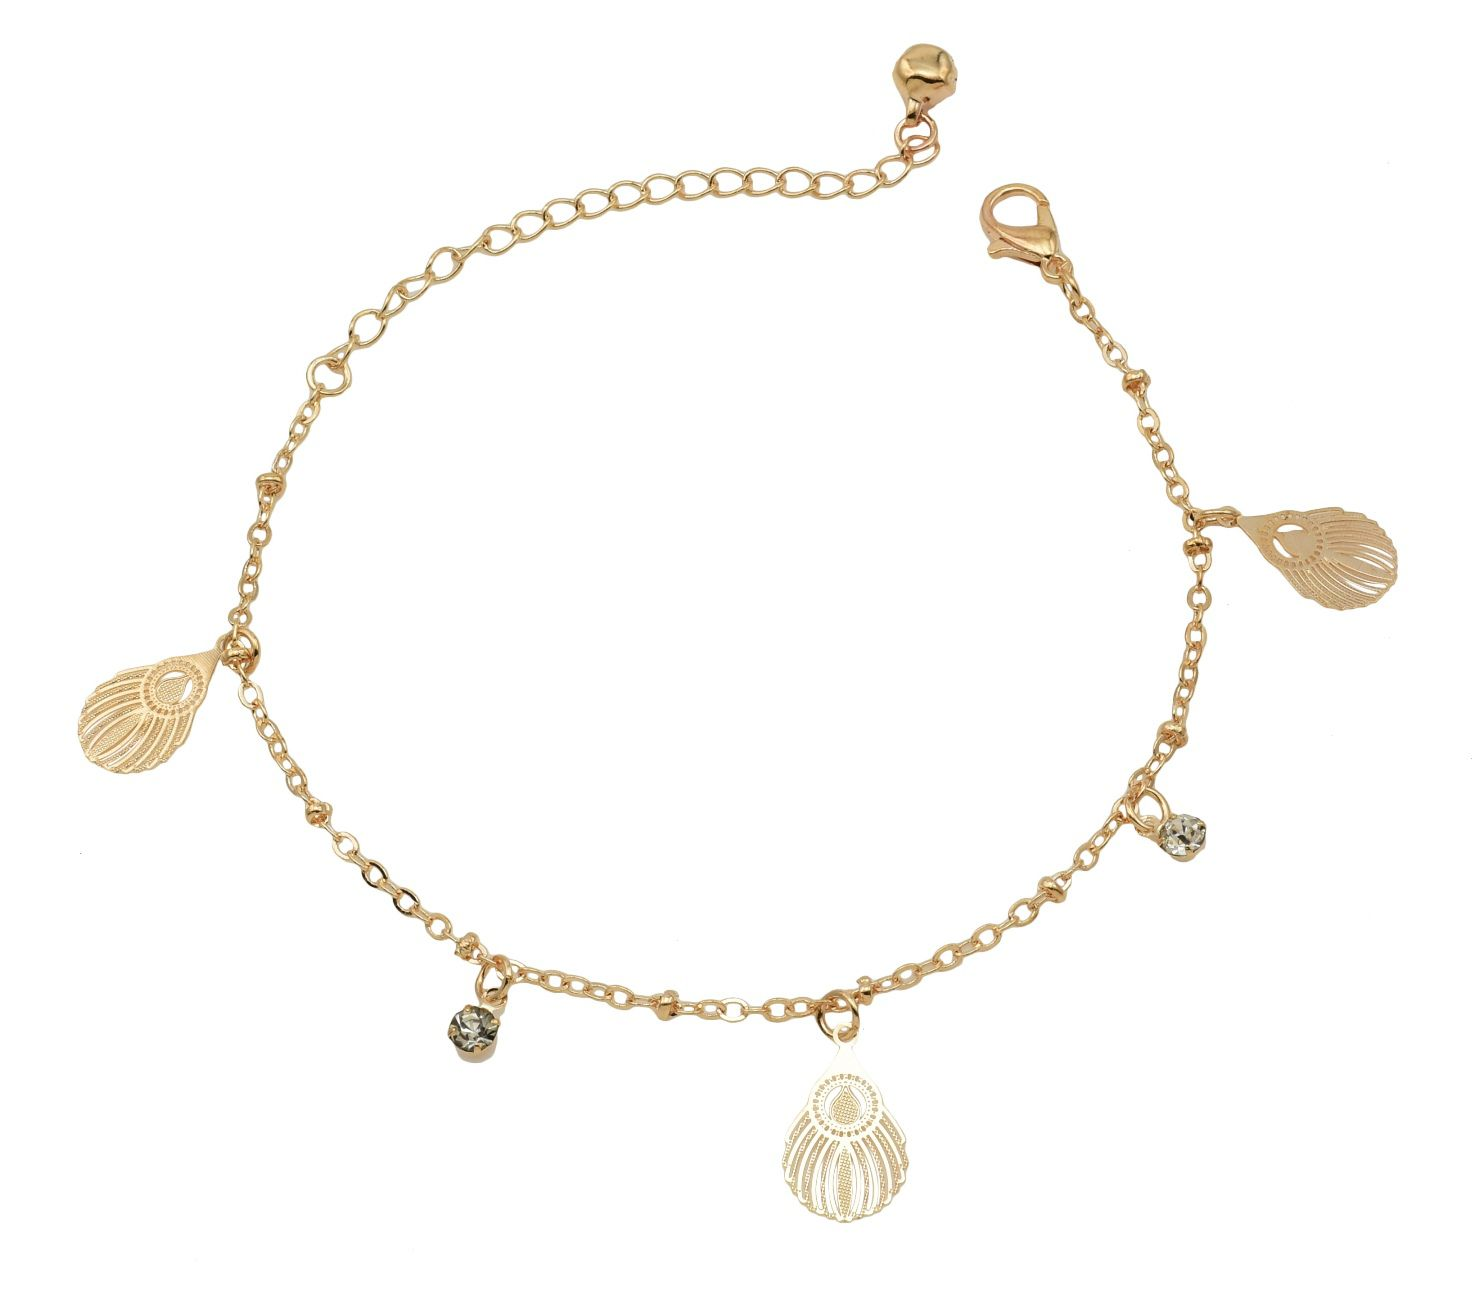 High Trendz Trendy Light Weight Gold Plated Anklet With Hanging Feather For Women And Girls